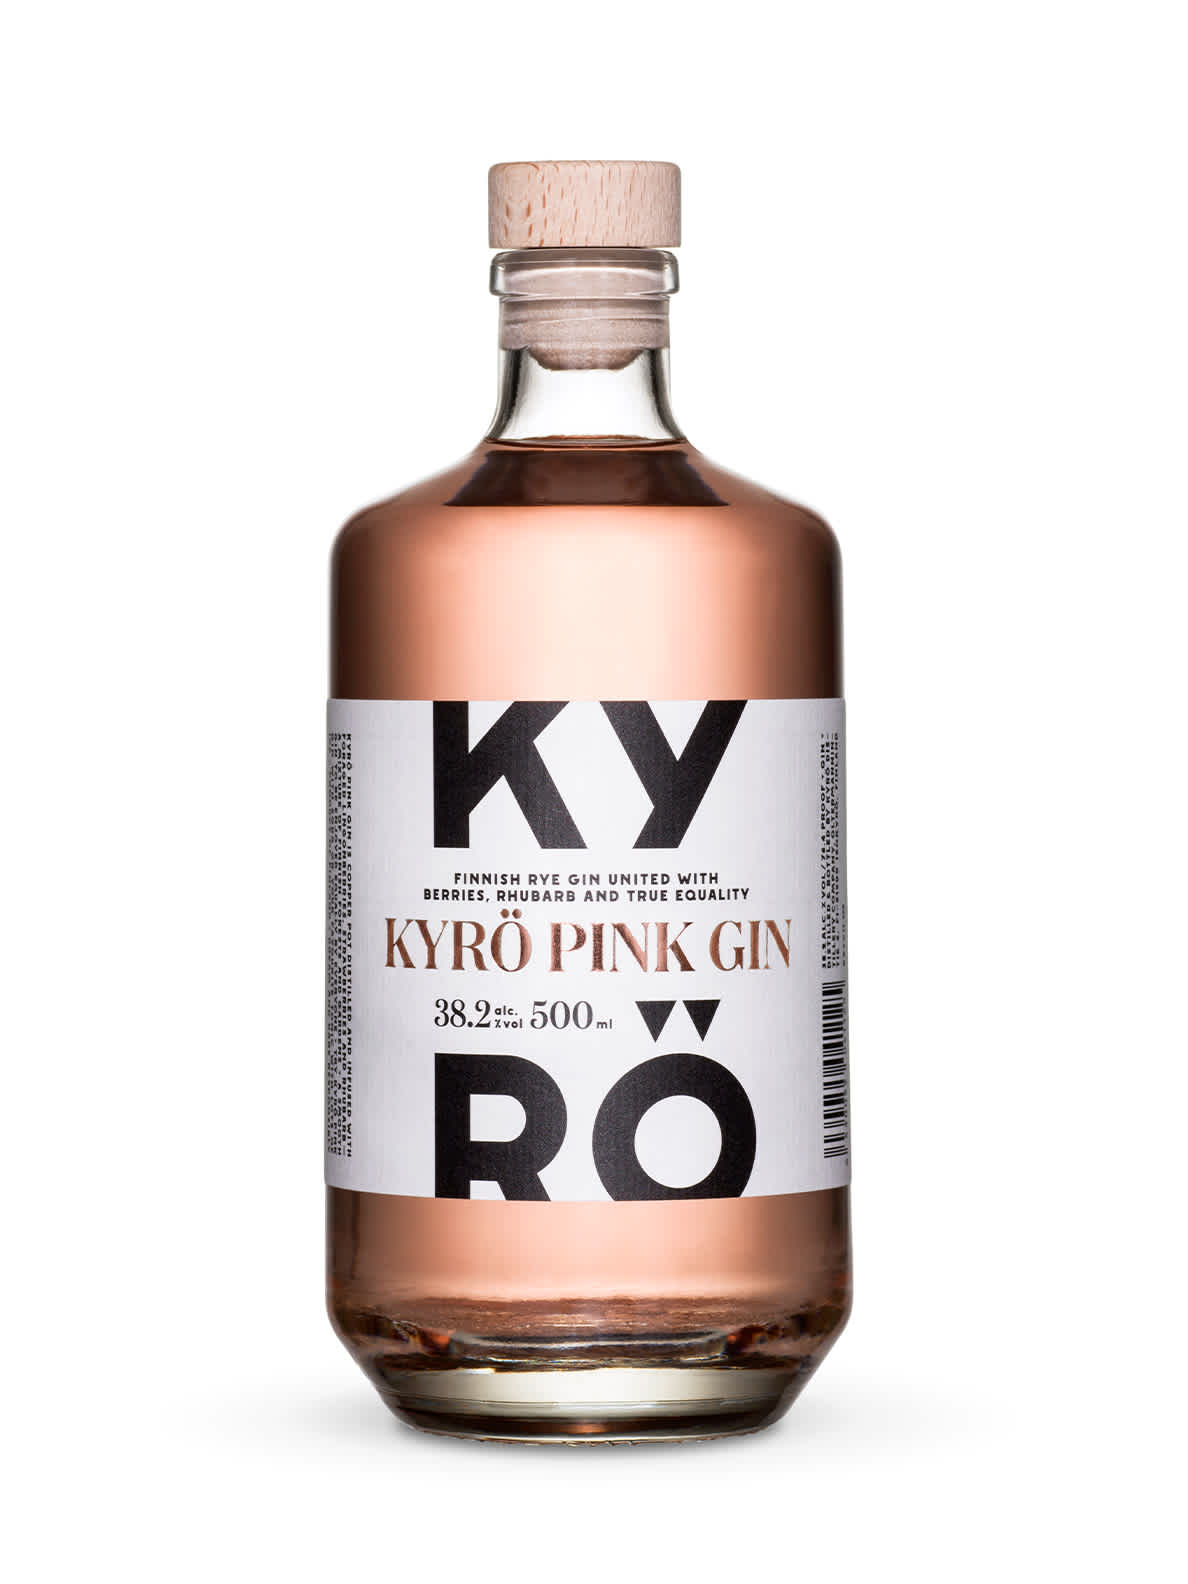 Product photo: a 500ml clear bottle of Kyrö Pink Gin, which is light pink in color, made by the Kyrö Distiller Company in Isokyrö, Finland.